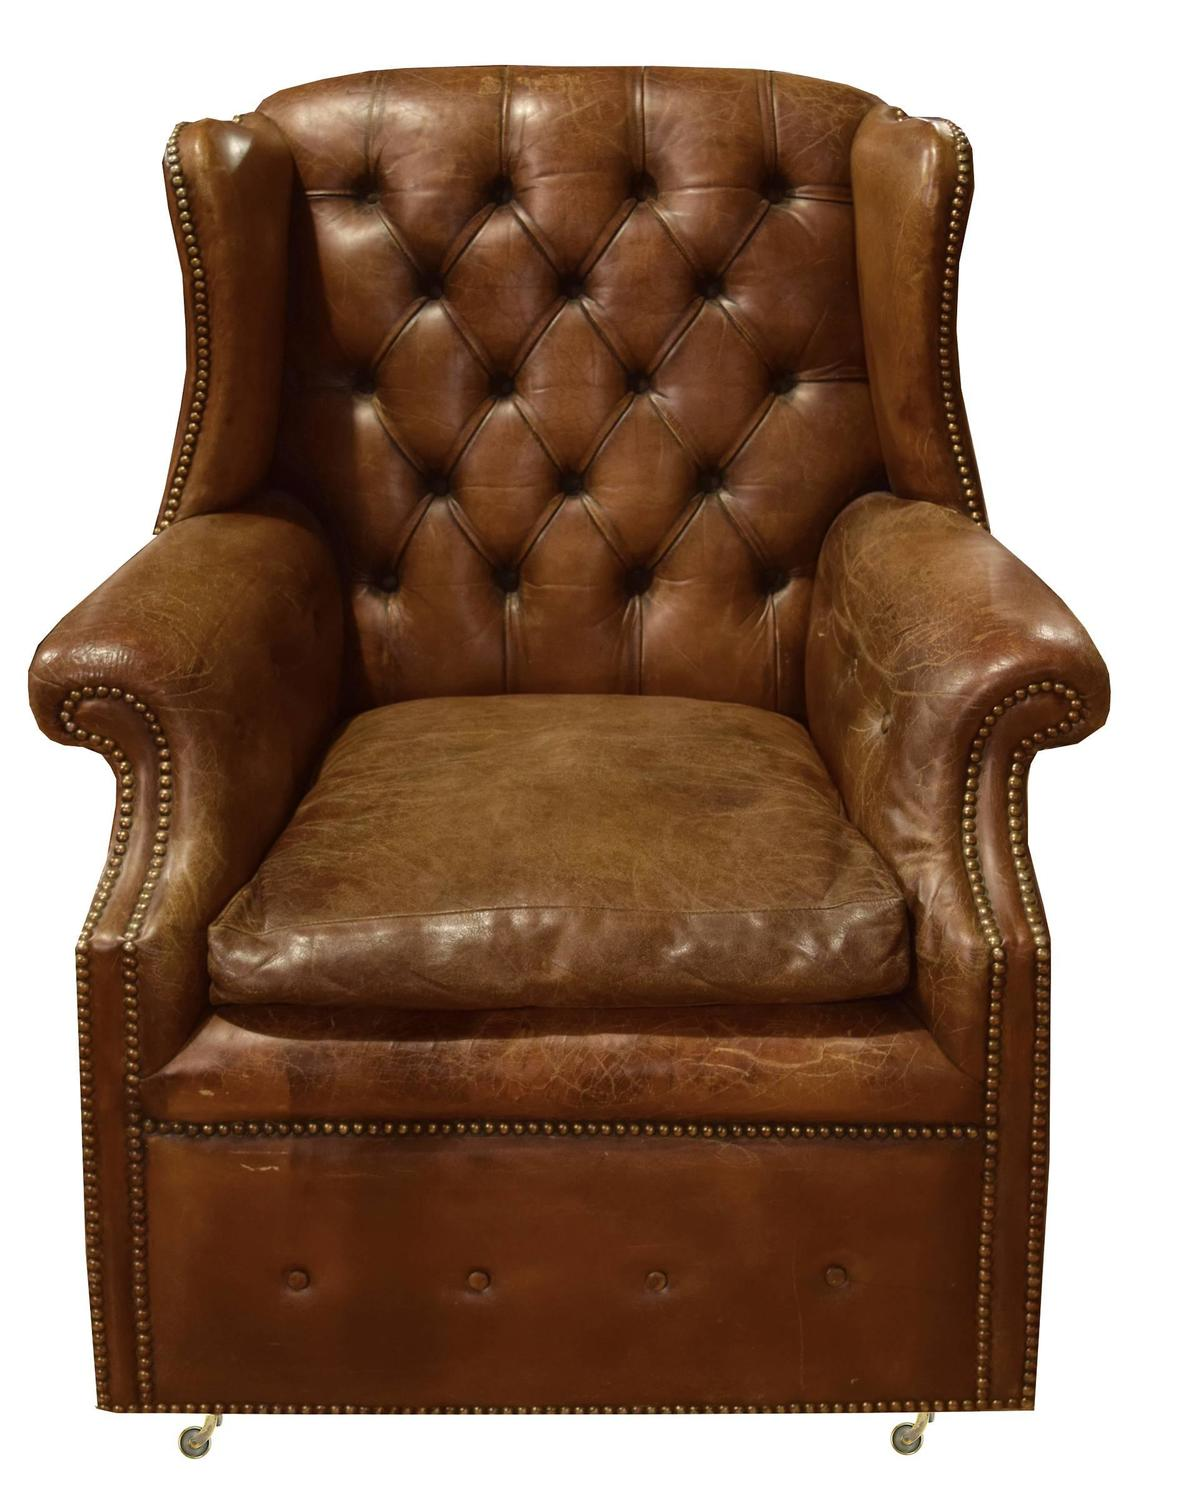 Italian tufted leather wing chair for sale at 1stdibs for Leather wingback recliner sale